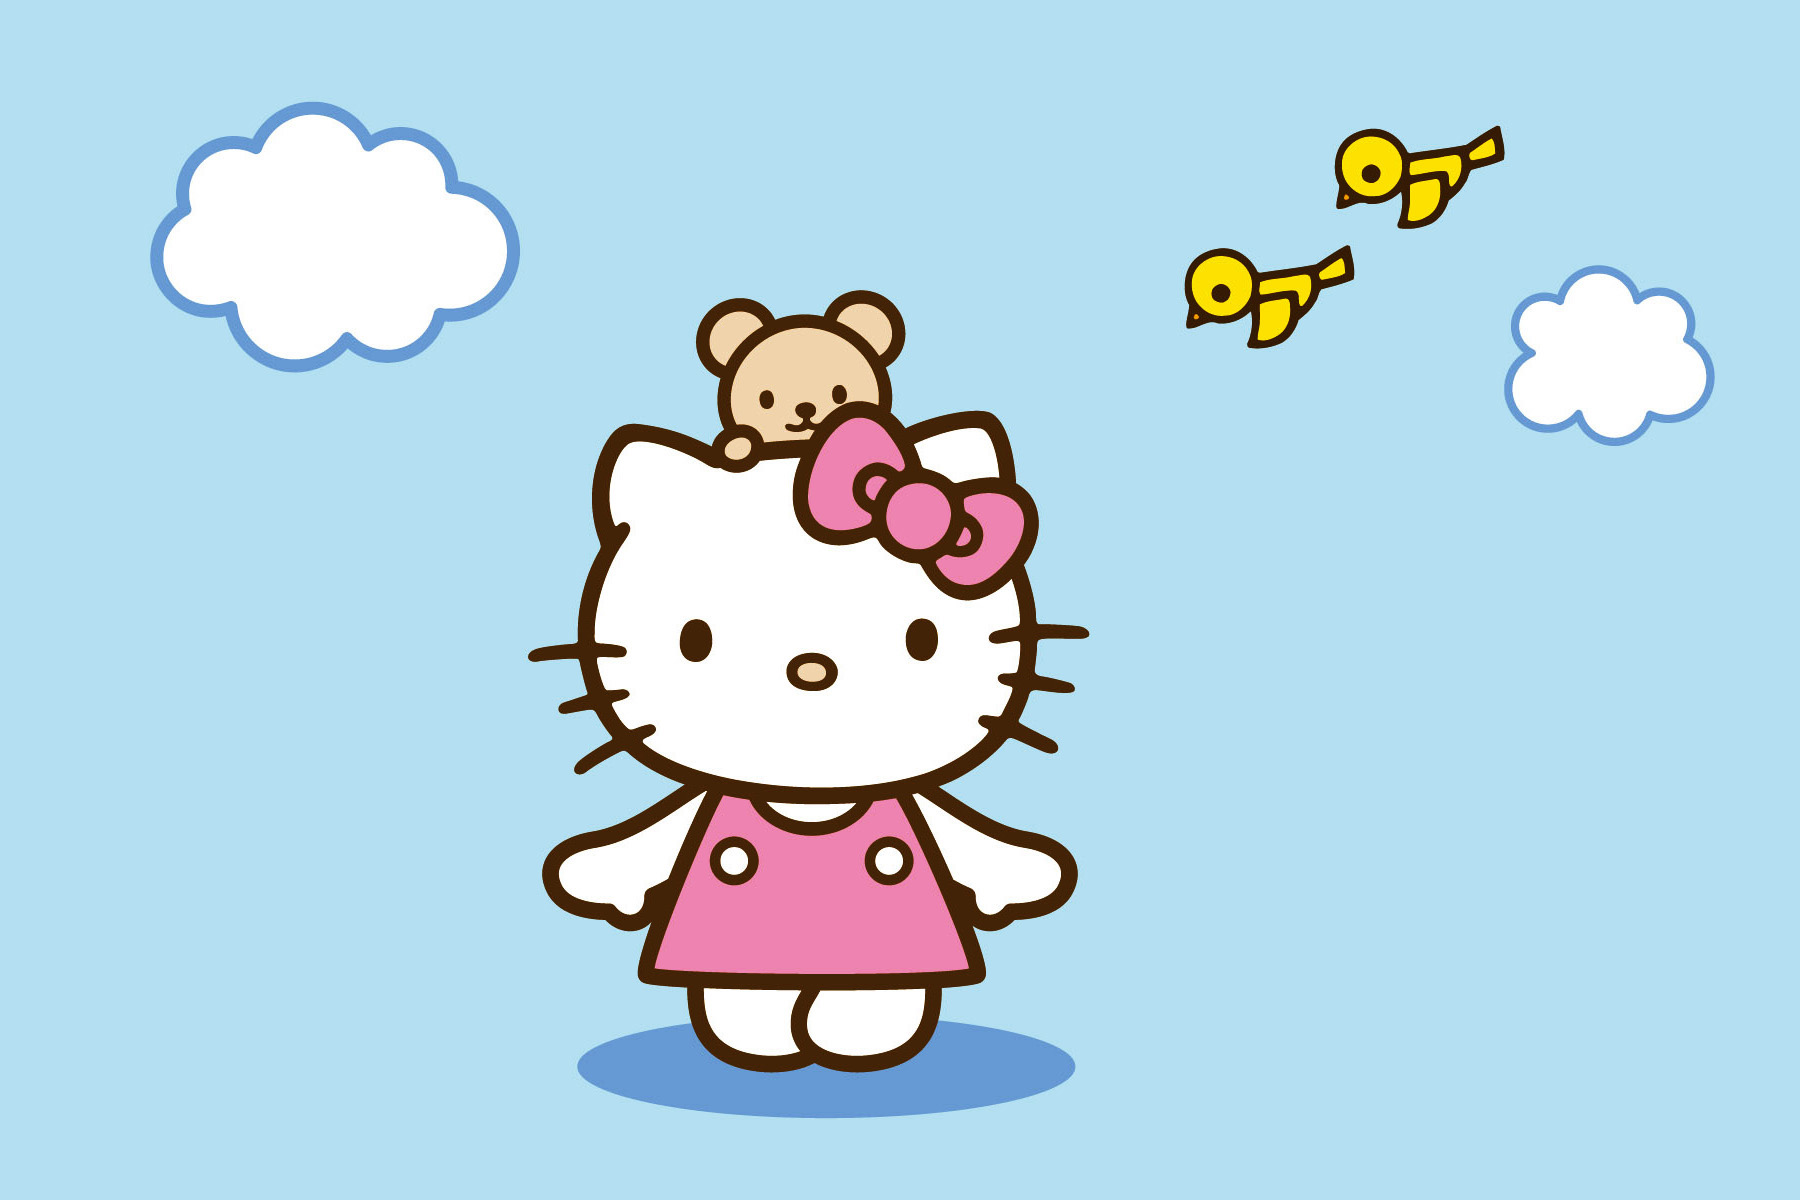 Amazing Wallpaper Hello Kitty Blackberry - hello-kitty-birds-6x44  You Should Have_74576.jpg